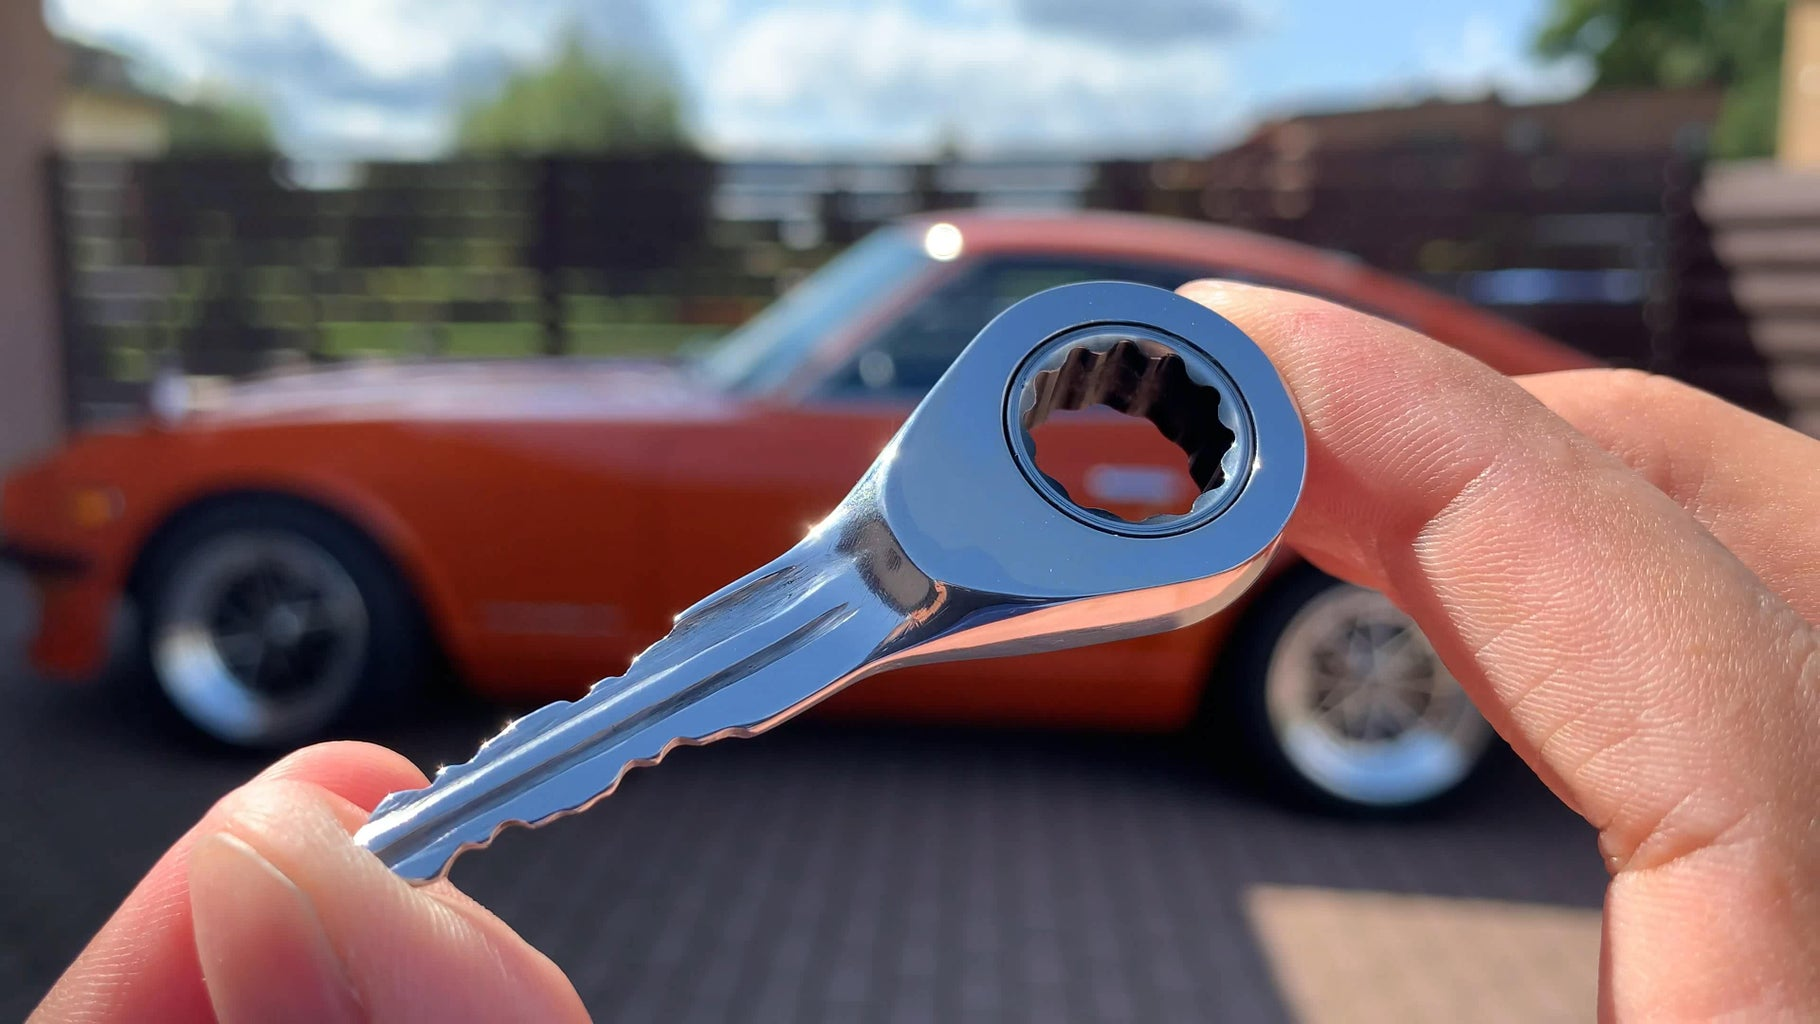 A Car Key Made From a Ratcheting Wrench